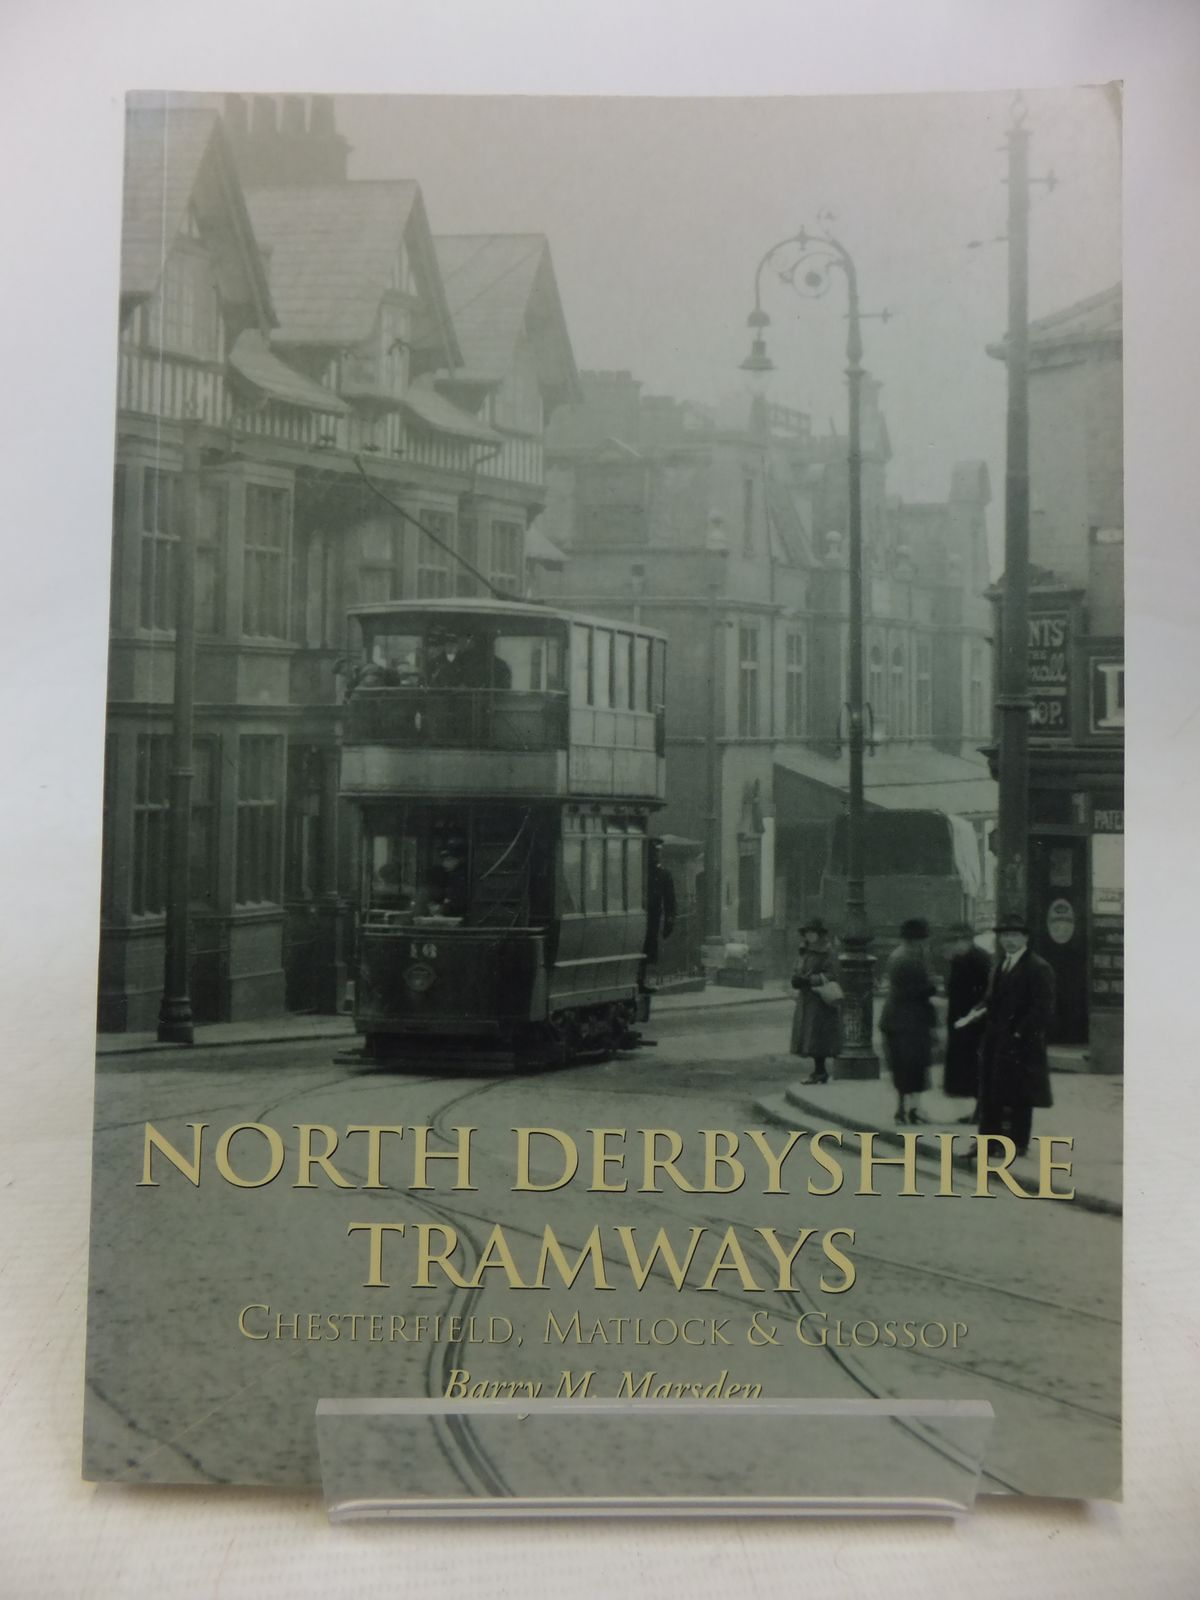 Photo of NORTH DERBYSHIRE TRAMWAYS CHESTERFIELD, MATLOCK & GLOSSOP written by Marsden, Barry M. published by Tempus Publishing Ltd (STOCK CODE: 2115186)  for sale by Stella & Rose's Books